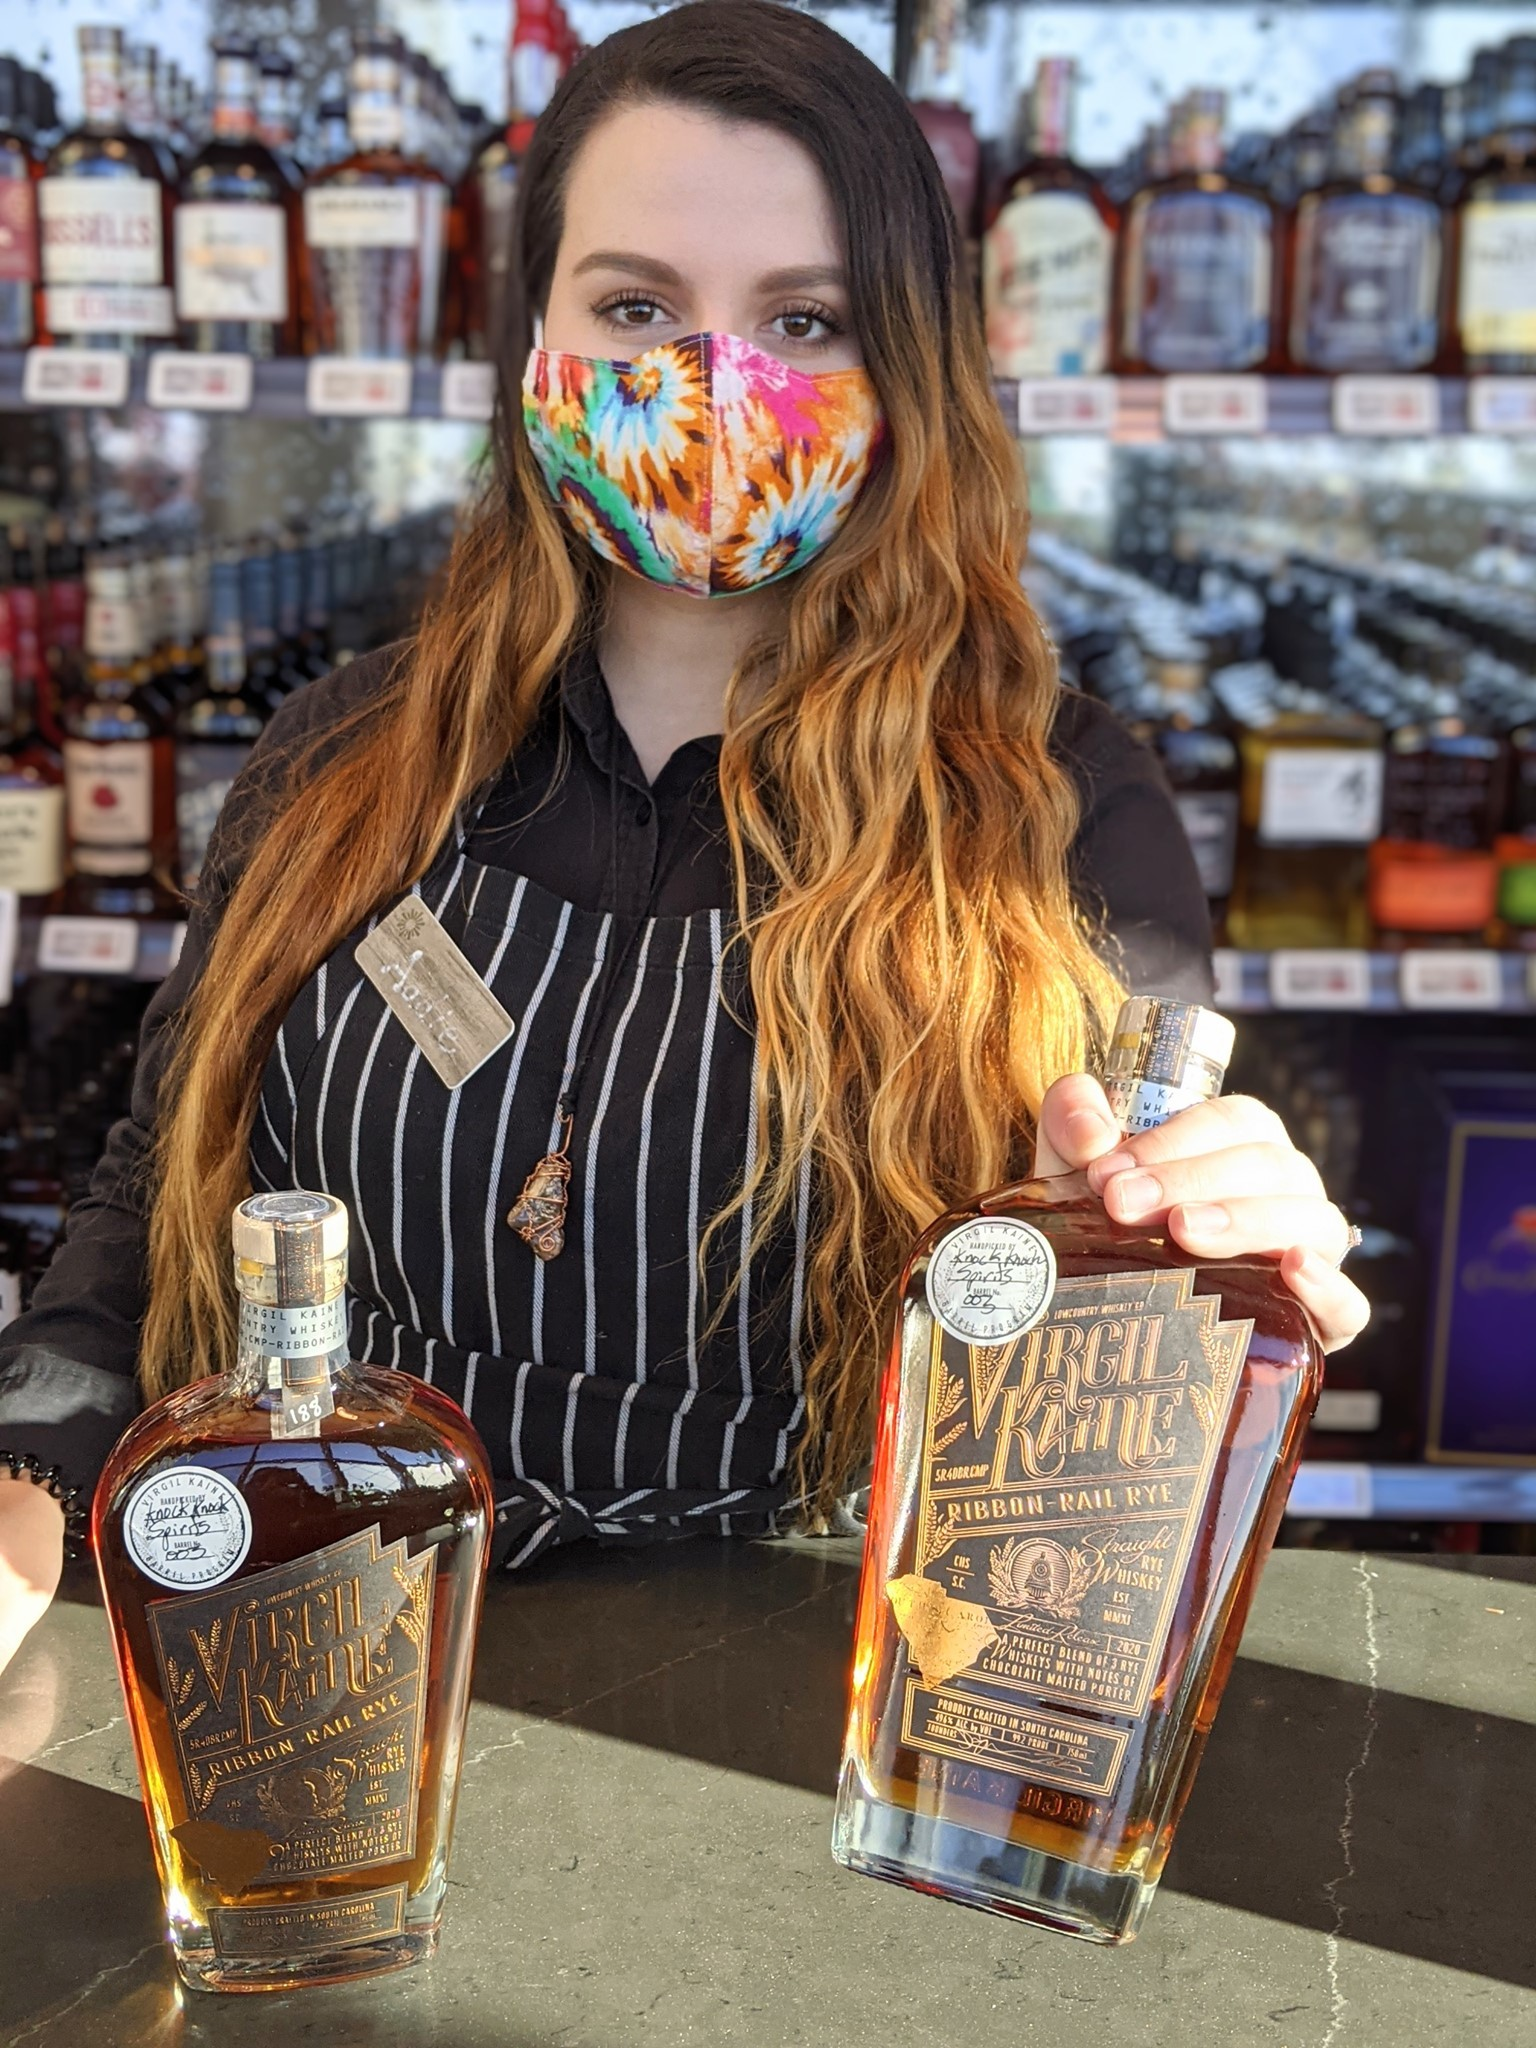 Find the hand-selected batch of Virgil Kaine's Ribbon-Rail Rye exclusive to Knock Knock Spirits next to Lowes Foods on Forest Dr. in Columbia | Photo provided